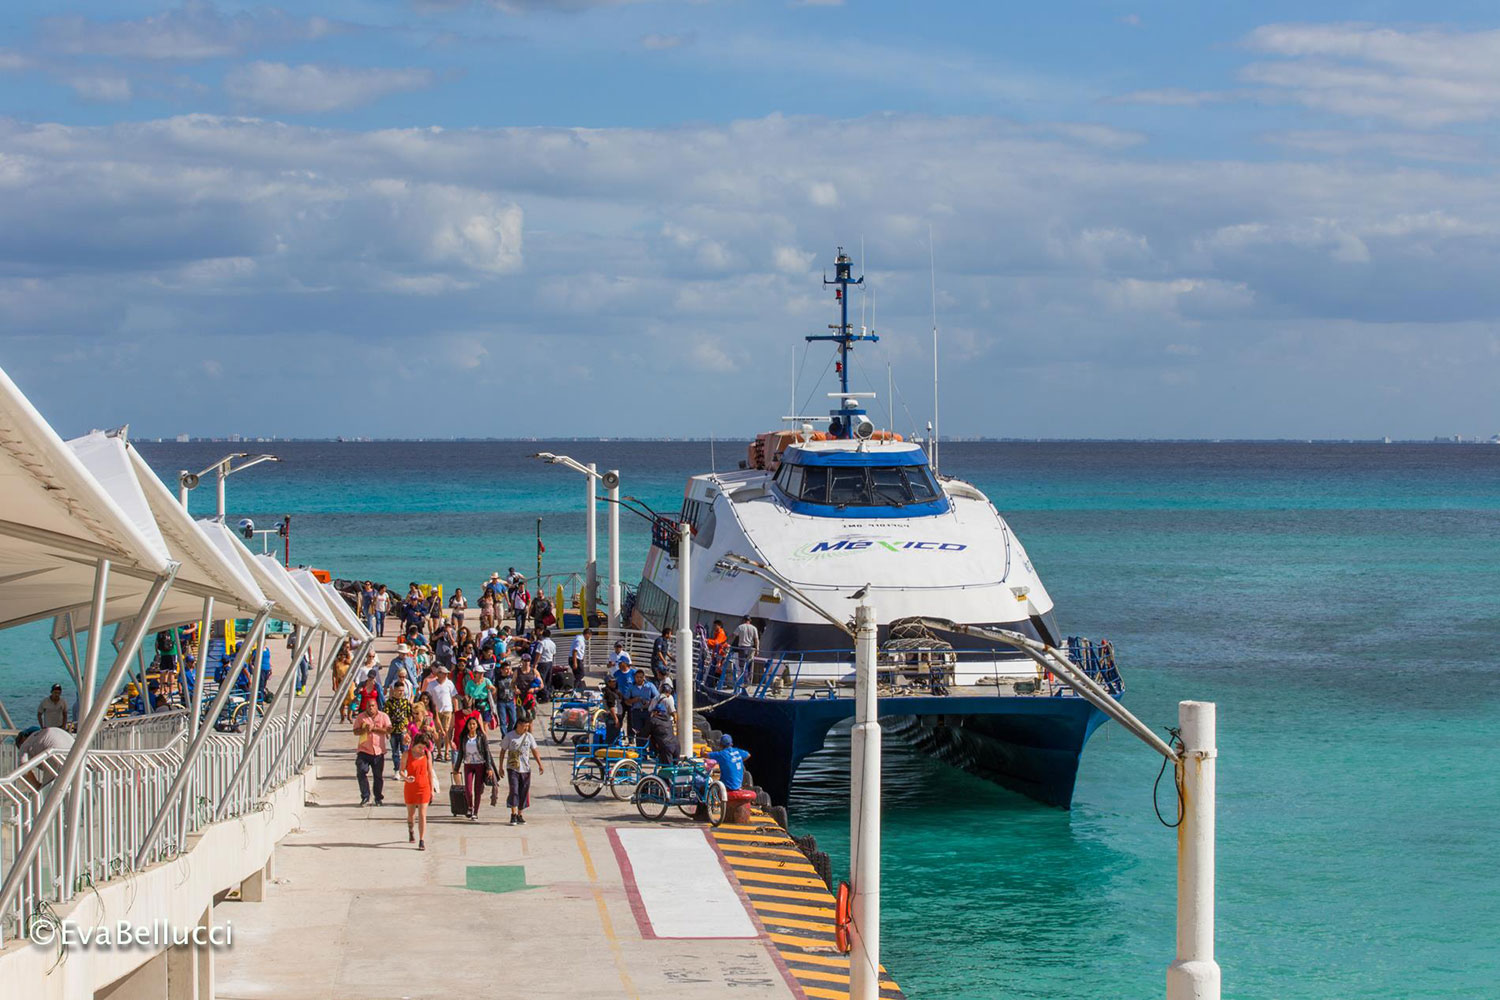 The ferry pier at Playa del Carmen.